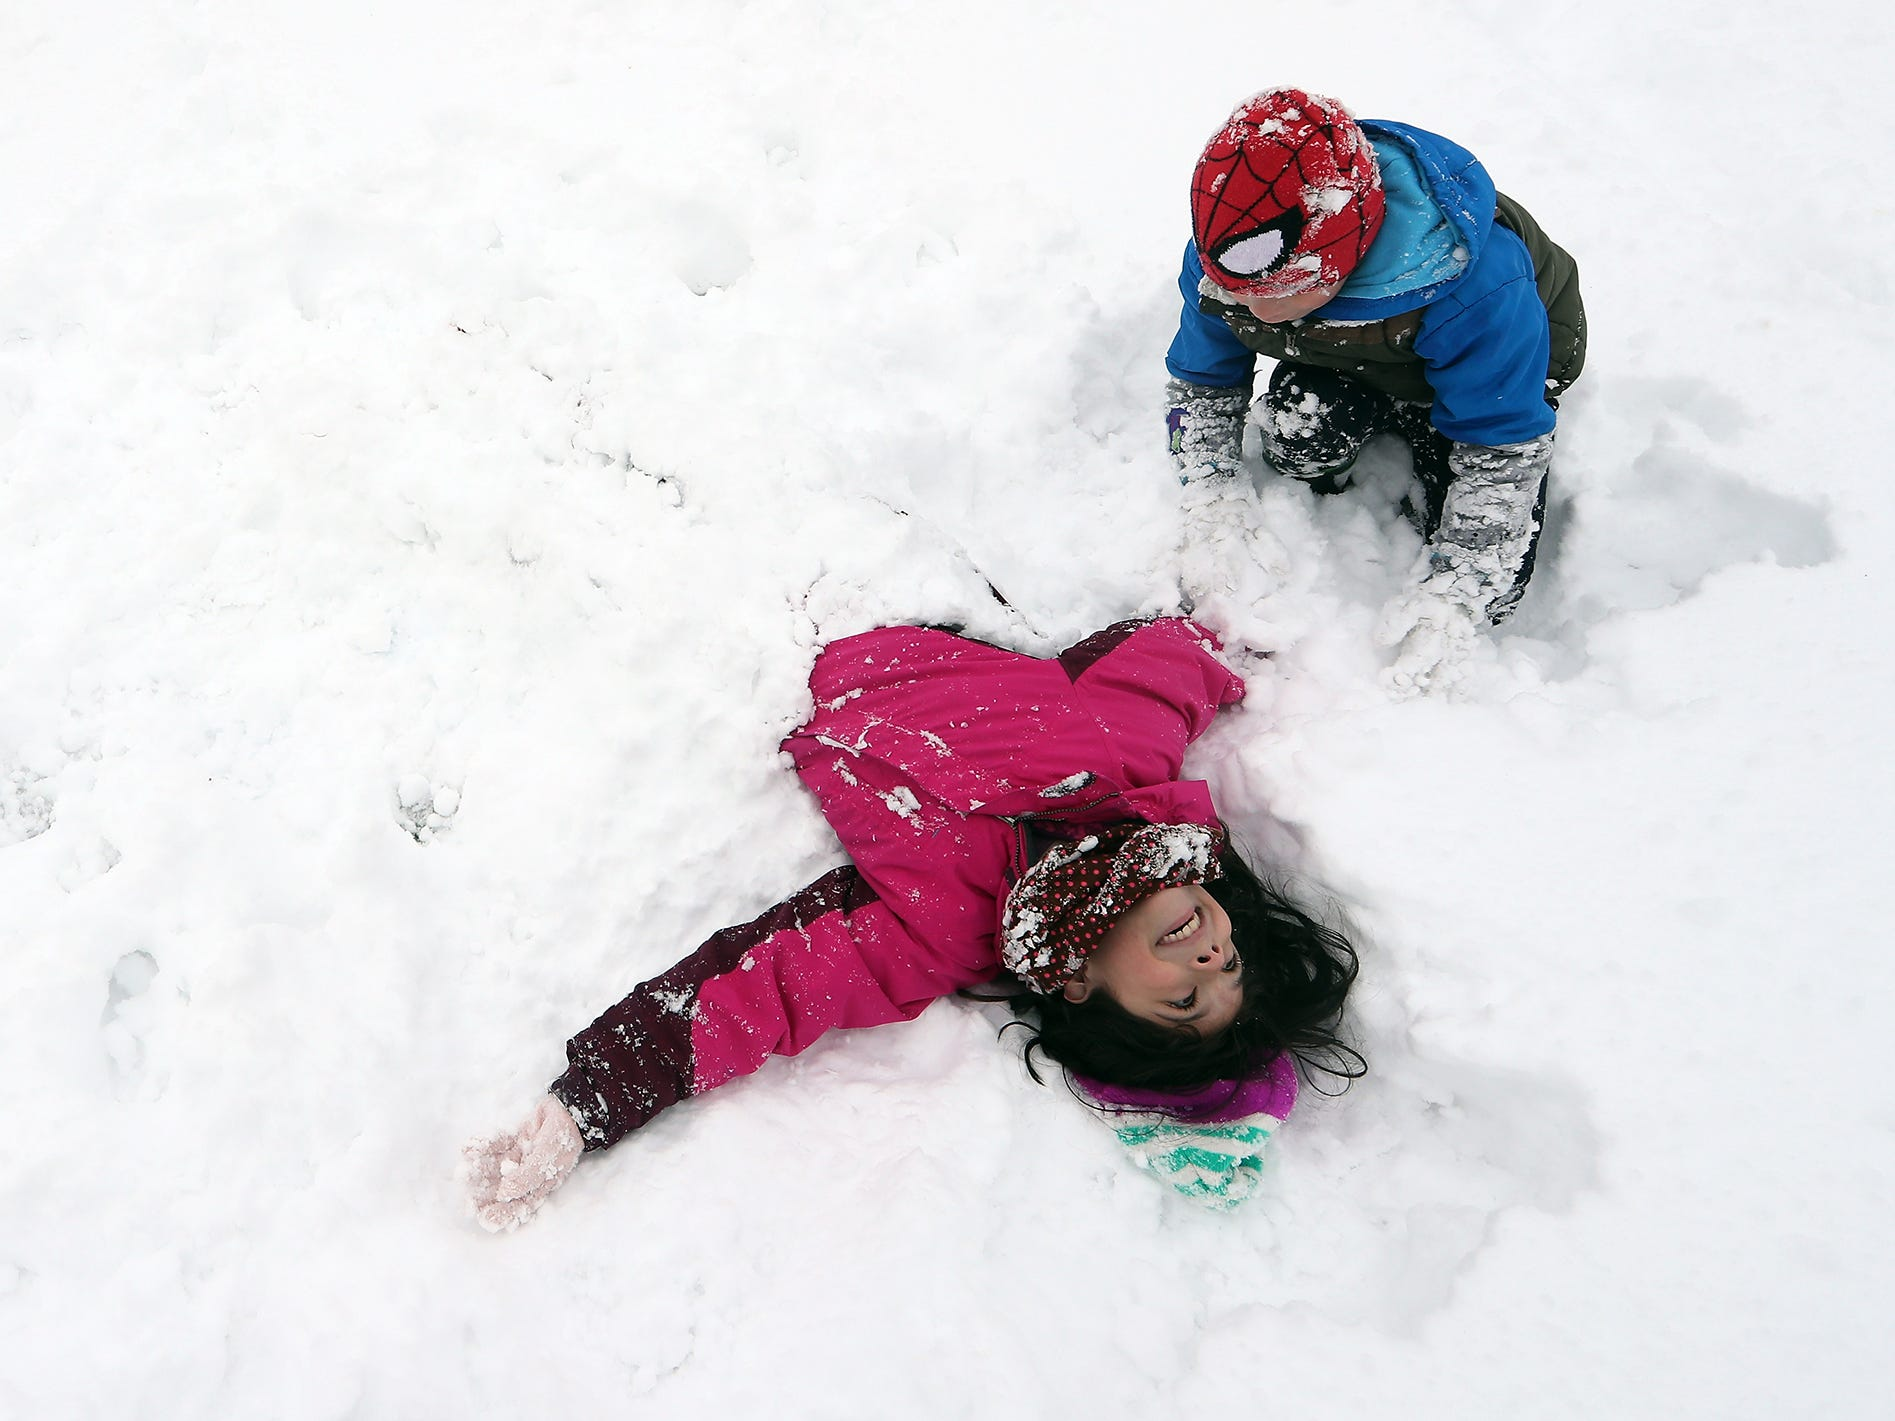 Sebastian Fletcher, 7, buries sister Peyton, 9, in the snow at Evergreen Rotary Park in Bremerton on Saturday, February 9, 2019.